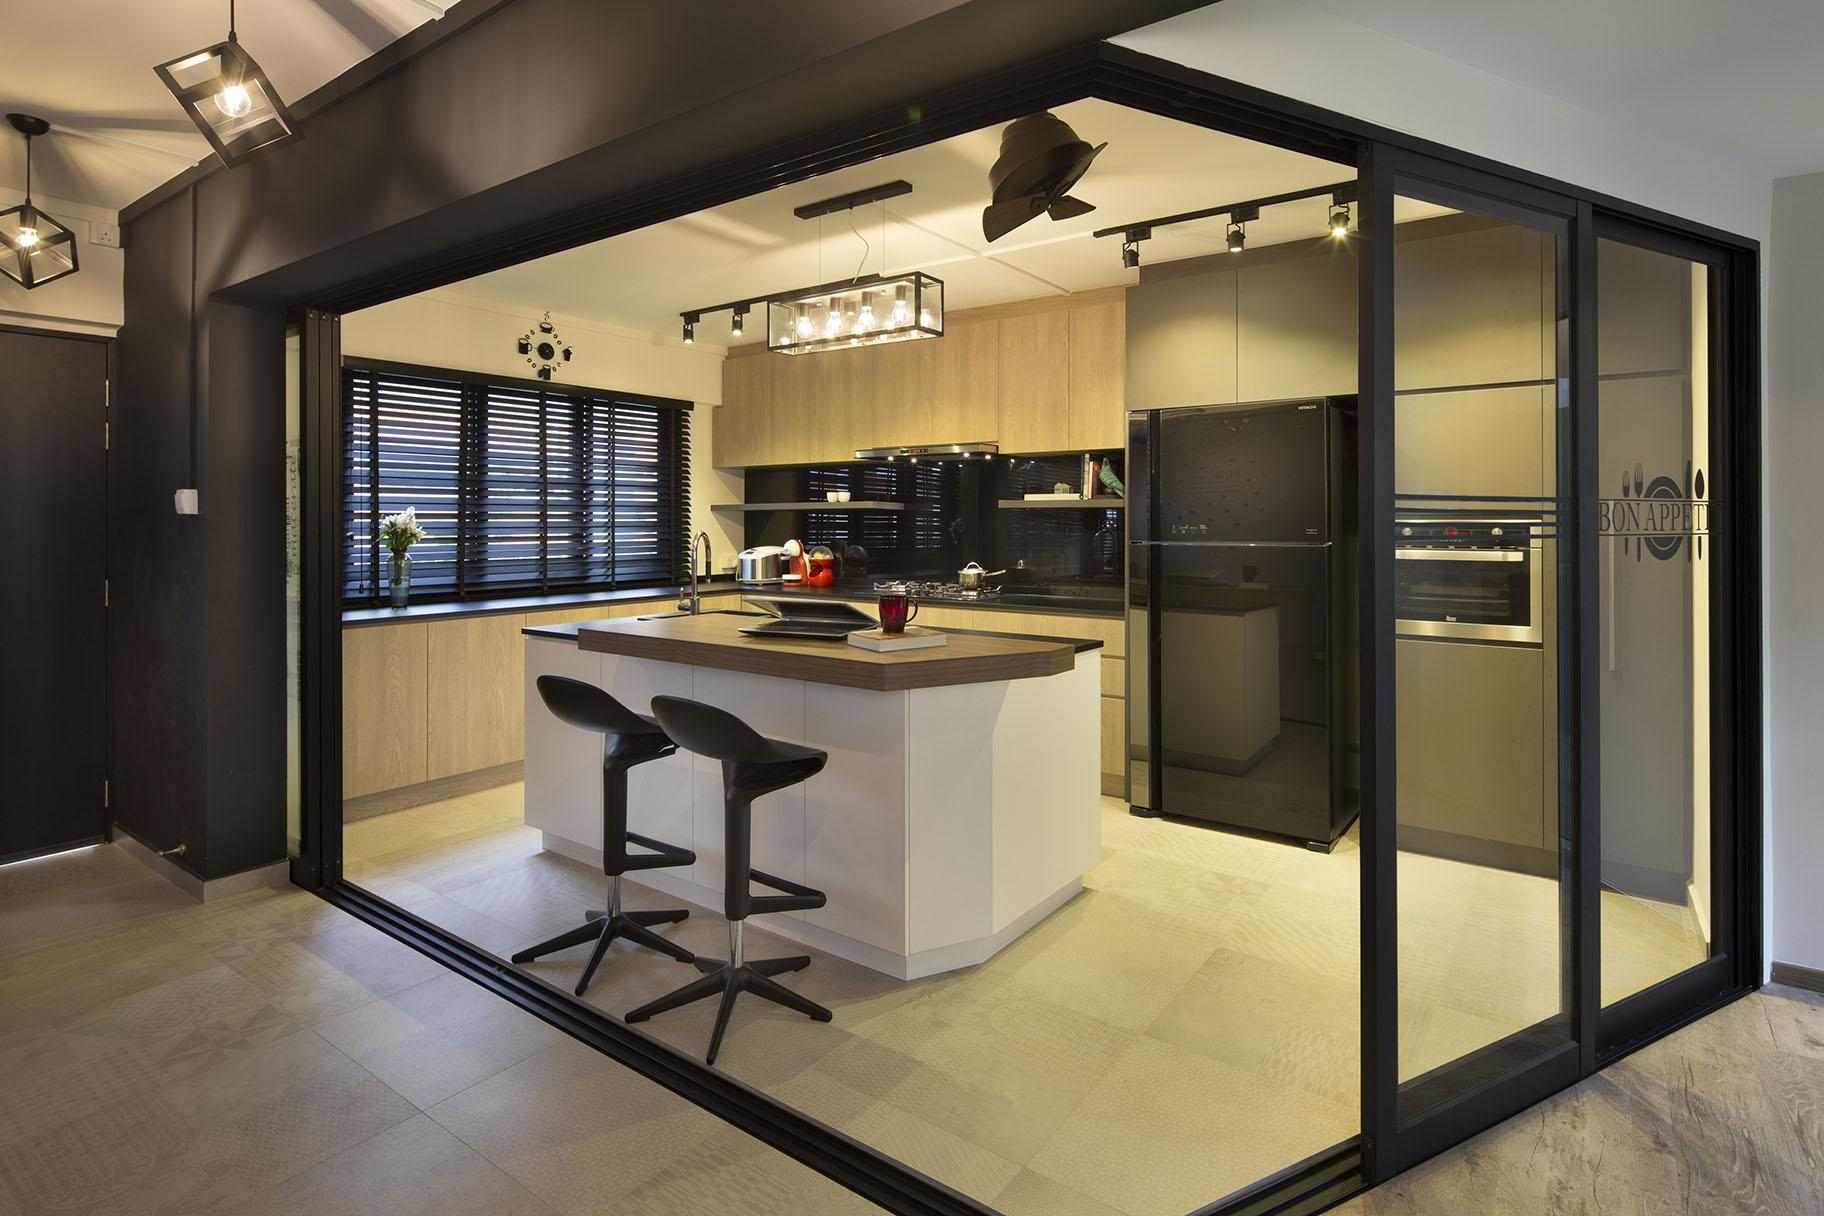 Best interior design company in singapore top interior for Top 10 architecture firms in singapore